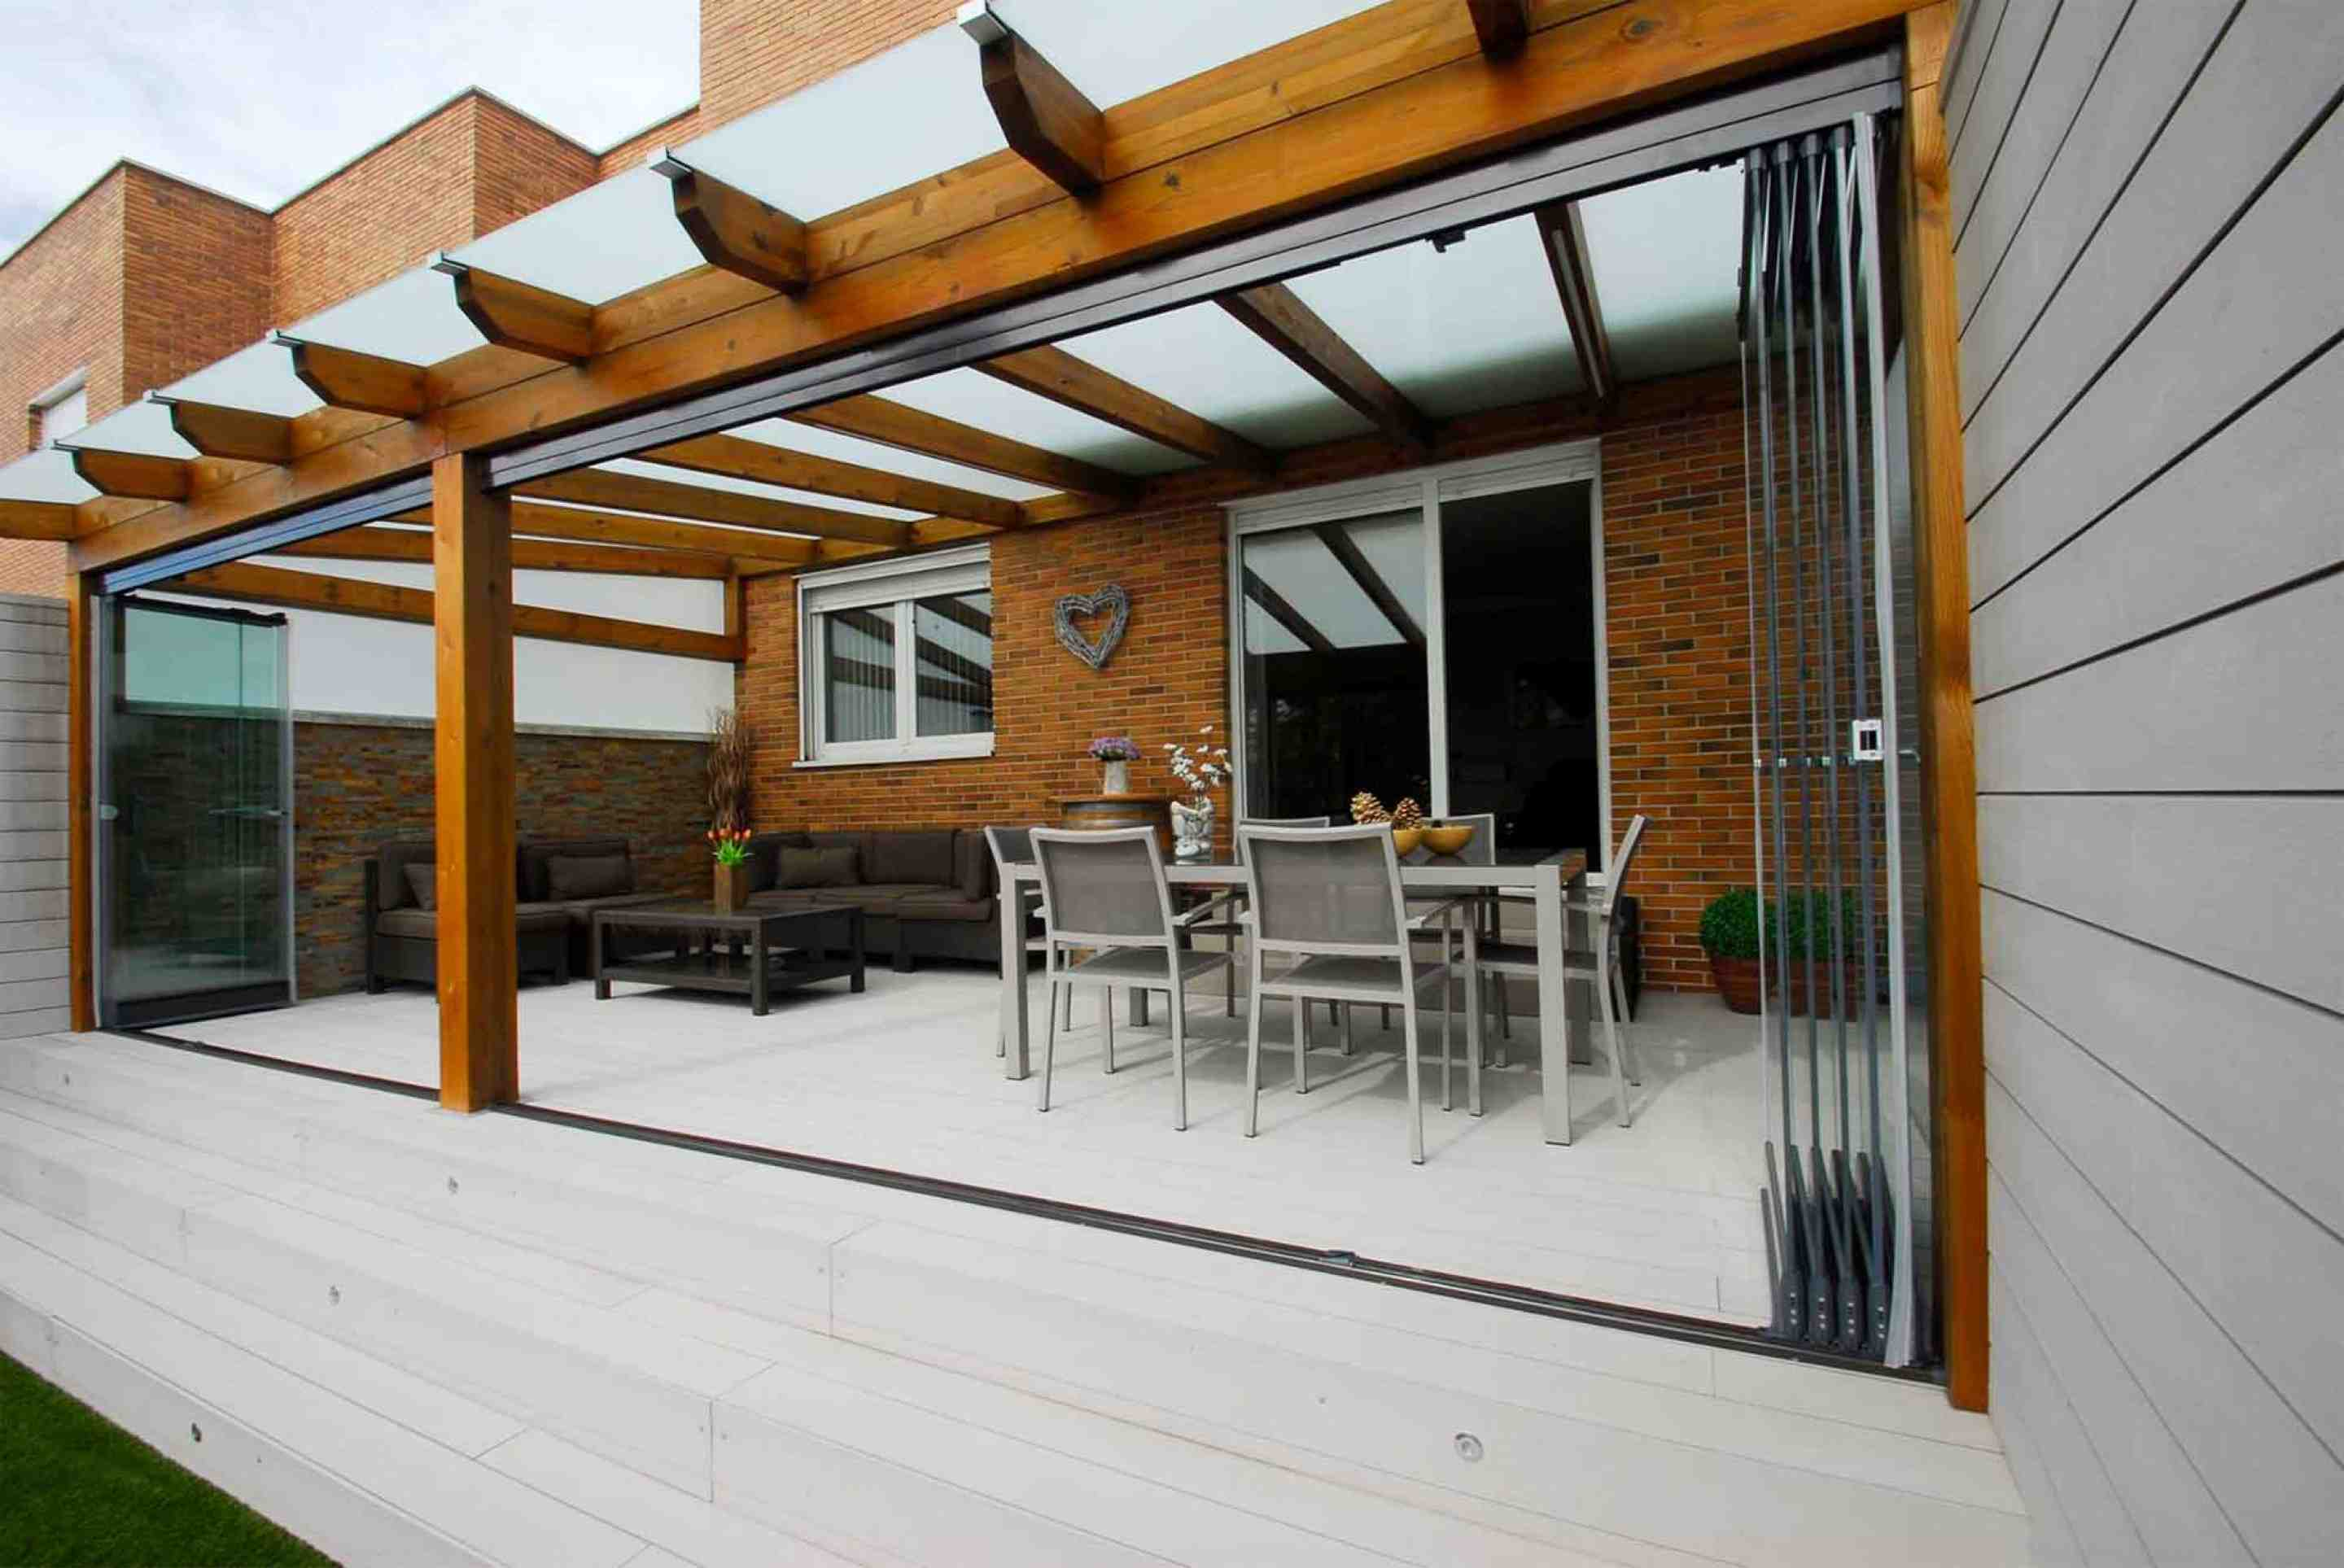 Terrace enclosure and glass roof